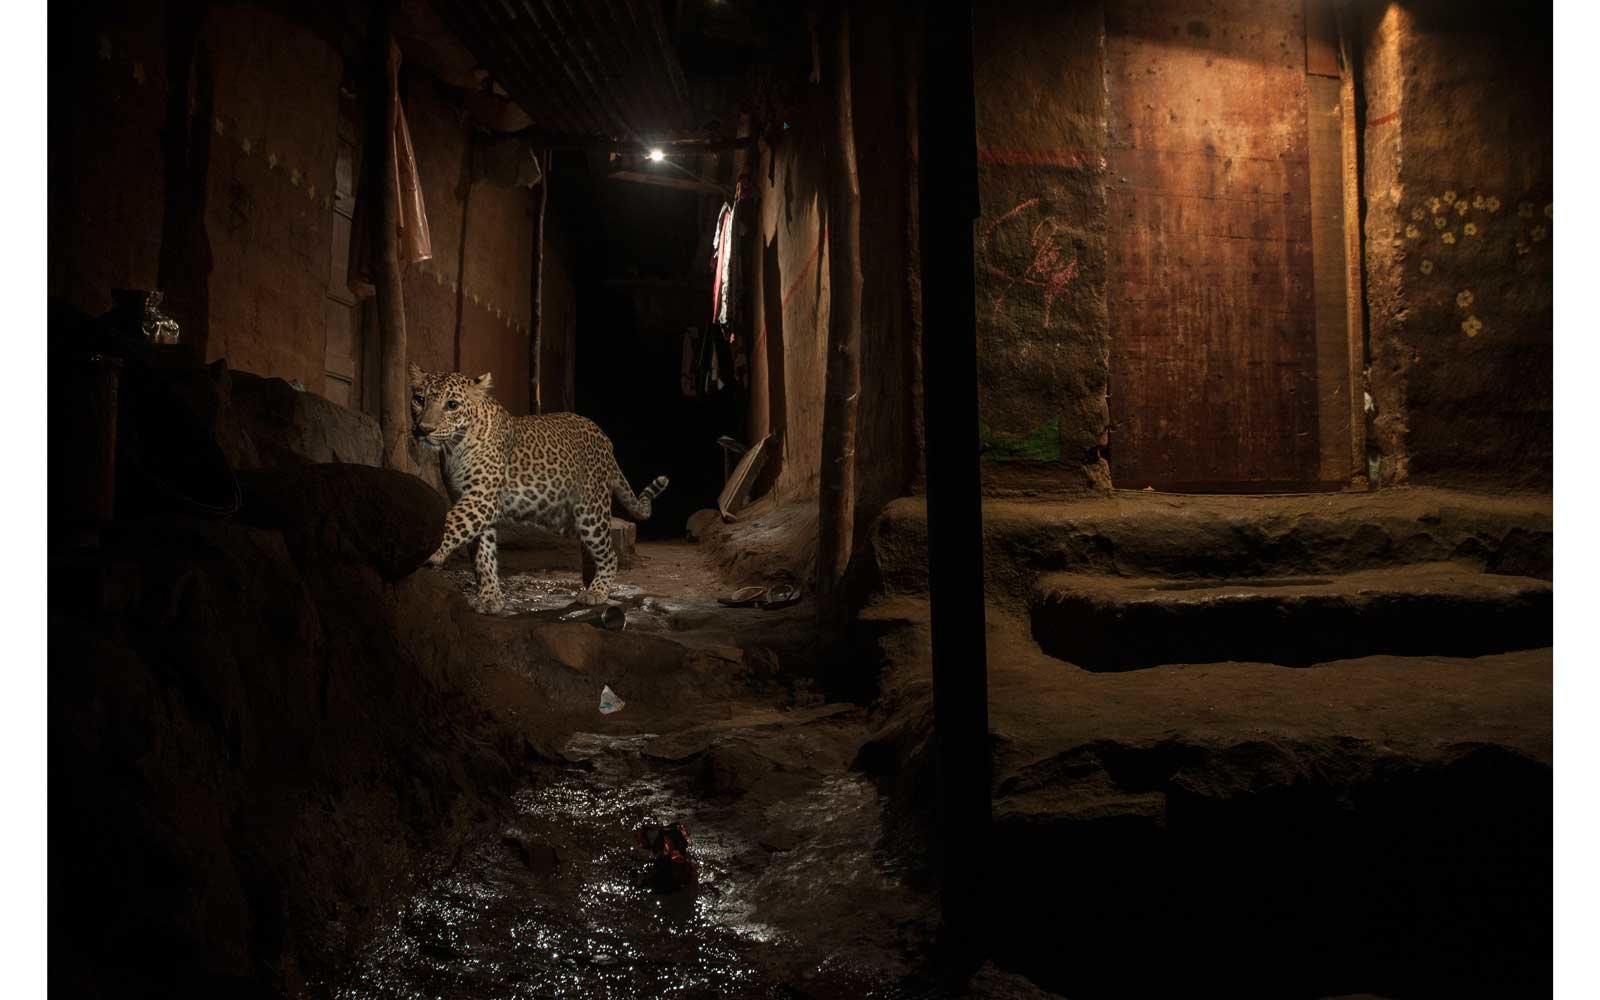 World Press Photo Awards - Nature